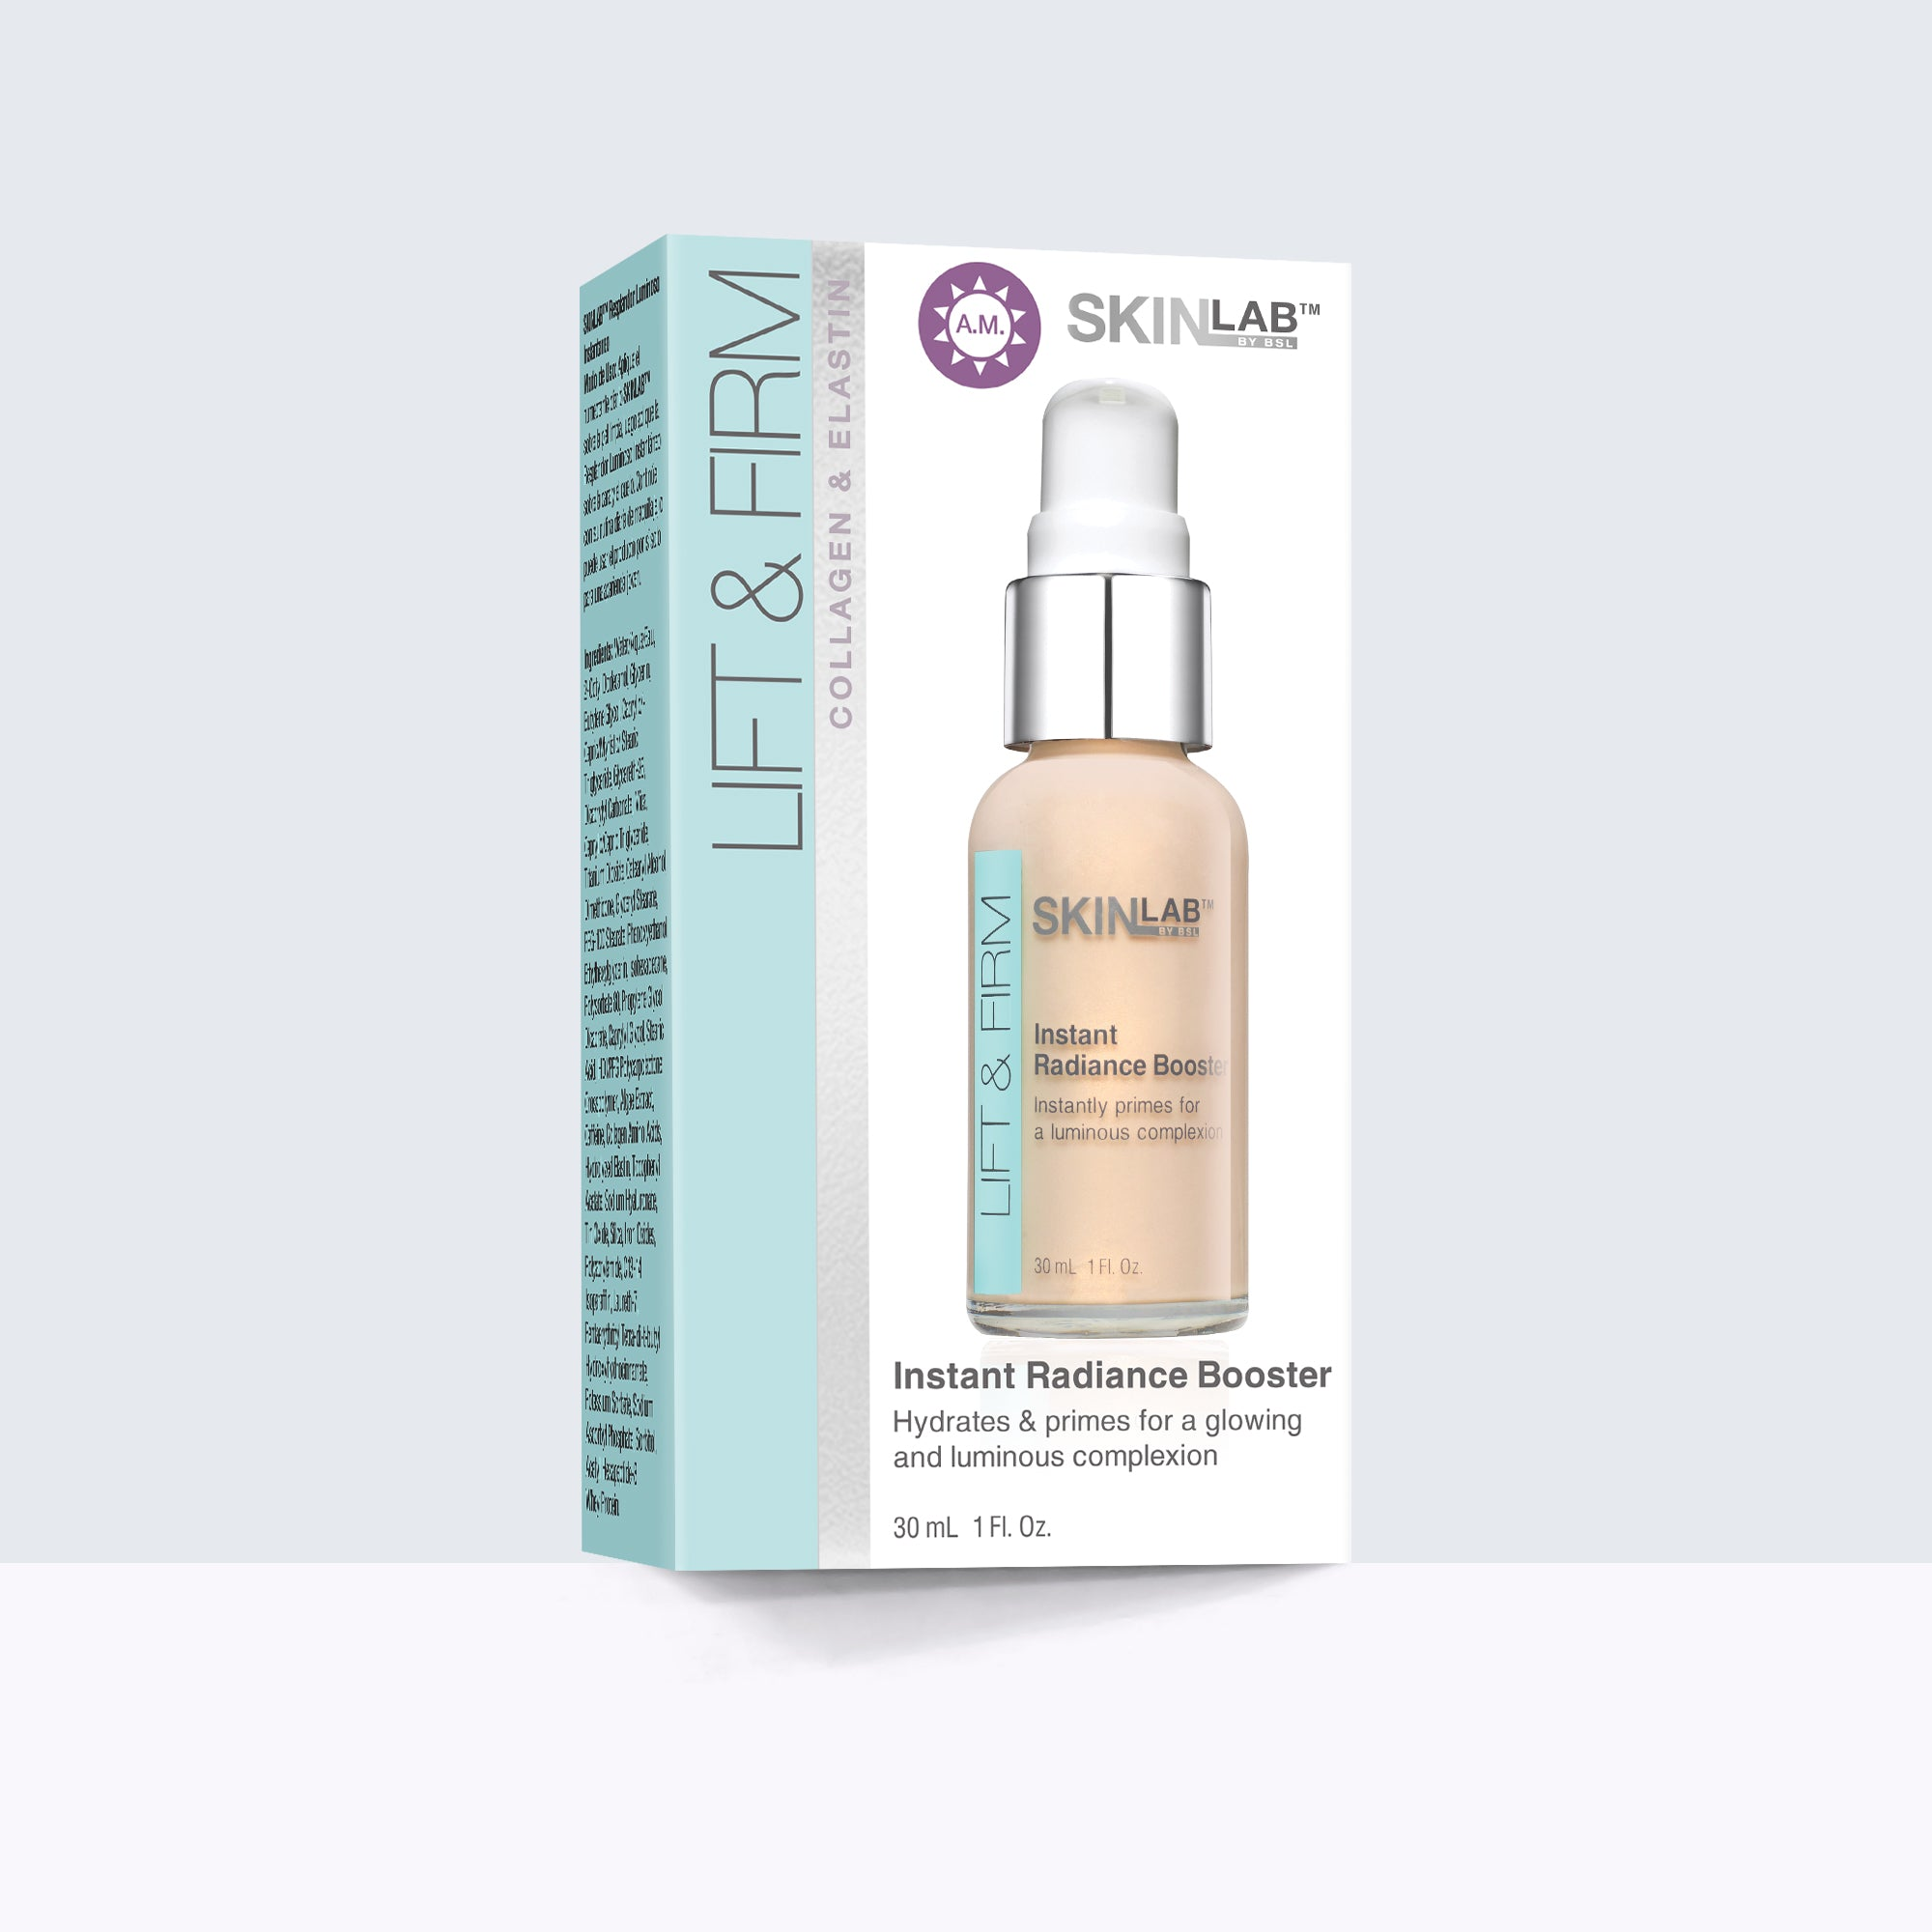 Lift & Firm Instant Radiance Booster